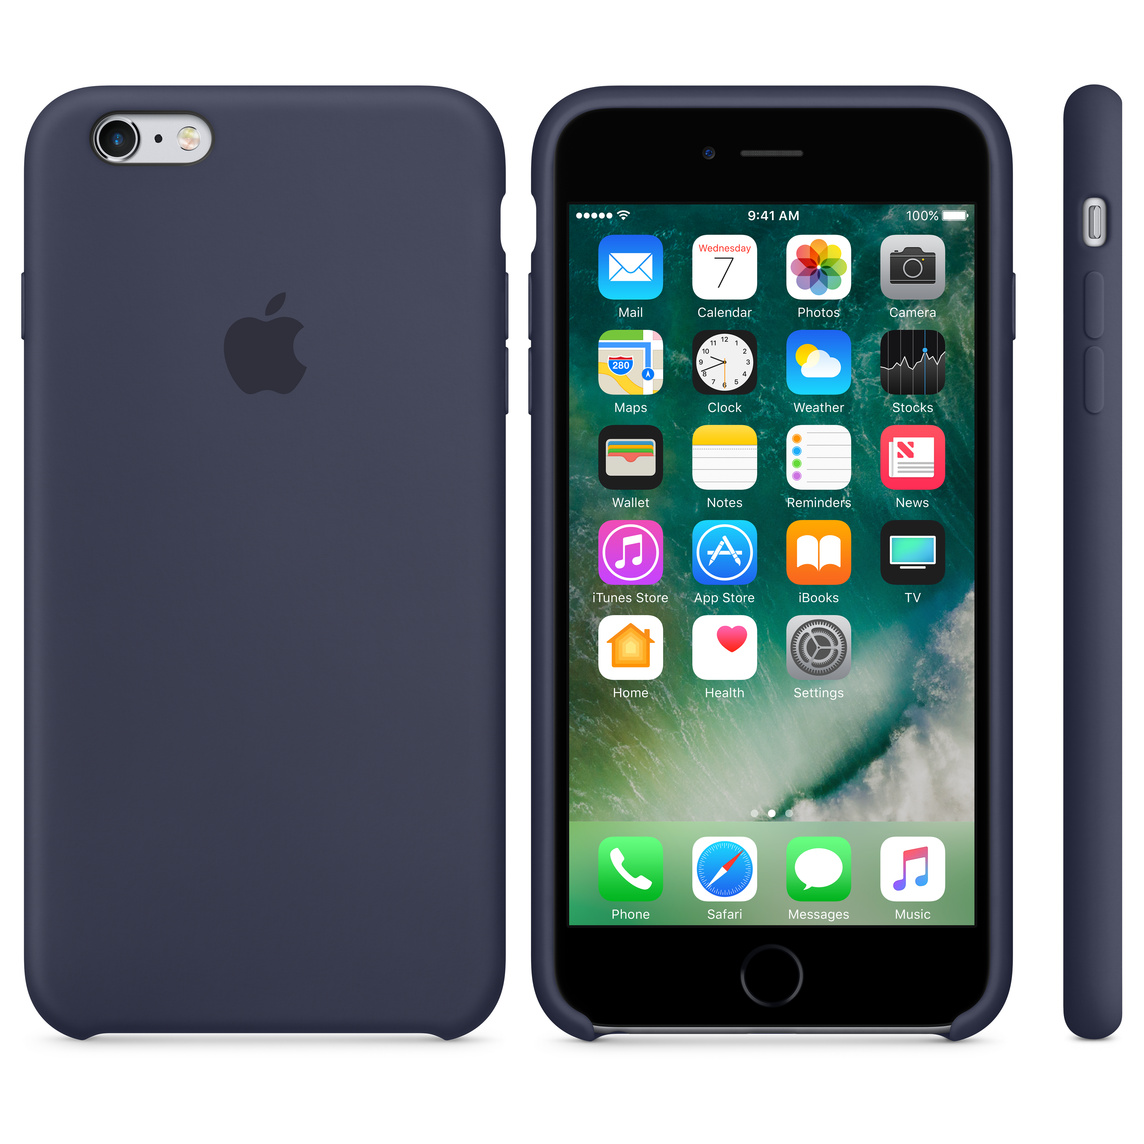 reputable site 27362 544fe iPhone 6 / 6s Silicone Case - Midnight Blue